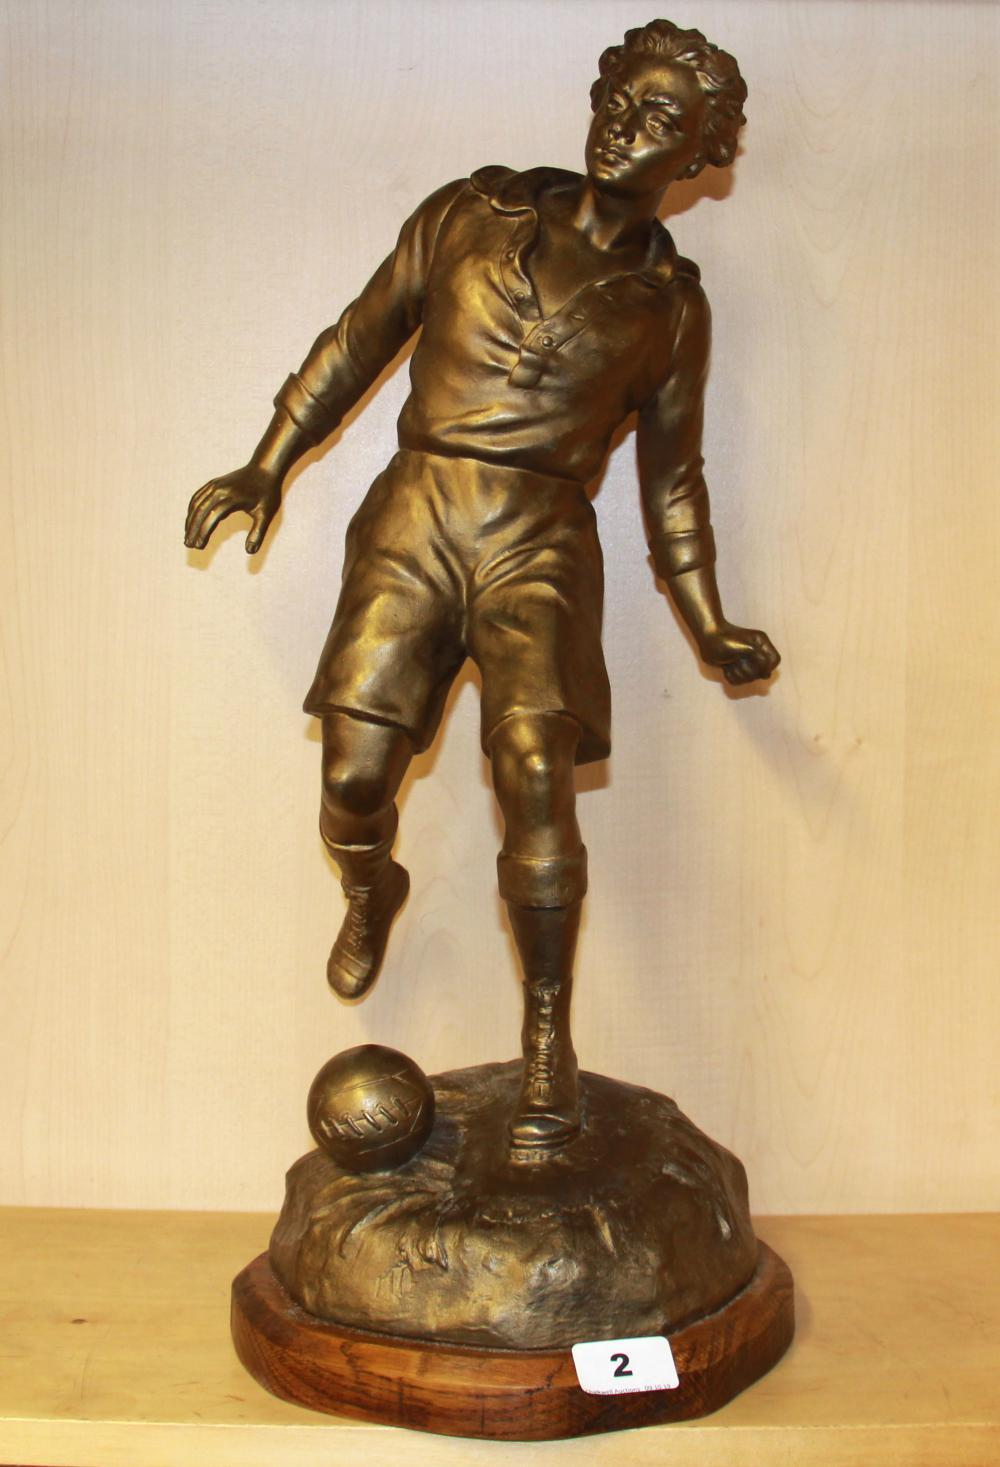 A large spelter figure of a footballer by S. (Sylvain) Kinsburger (French 1855-1935), H. 54cm.